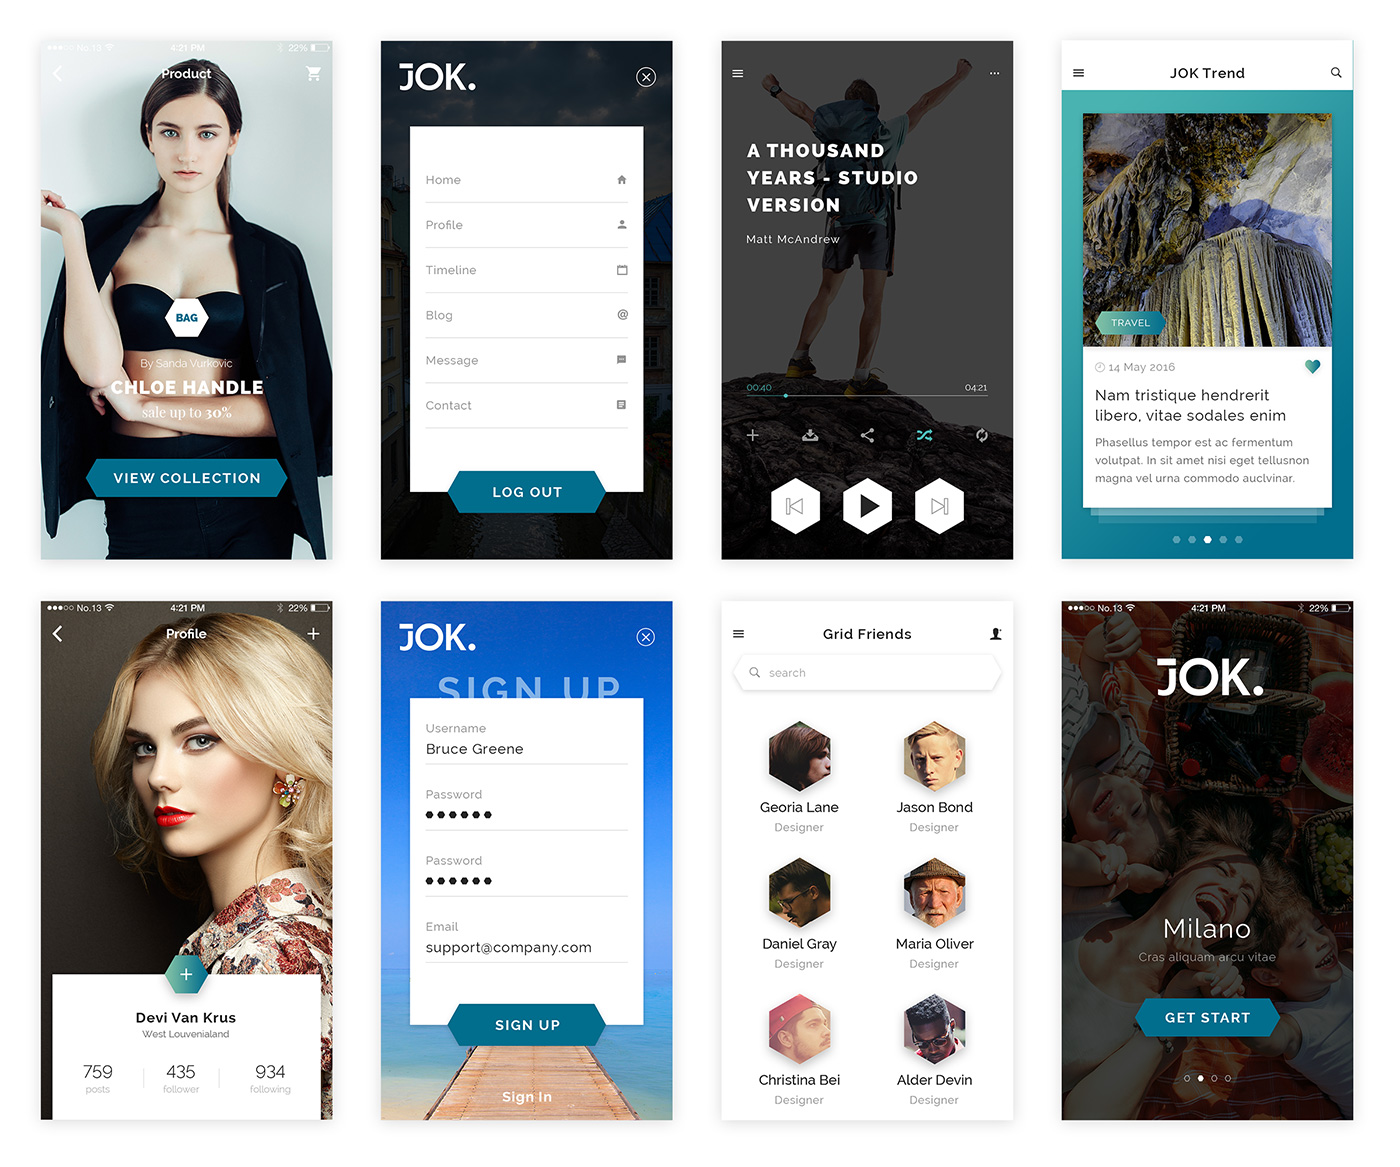 Jok App Design Free UI Kit for Sketch and PSD - Free Fashion Design Theme Mobile App Concept